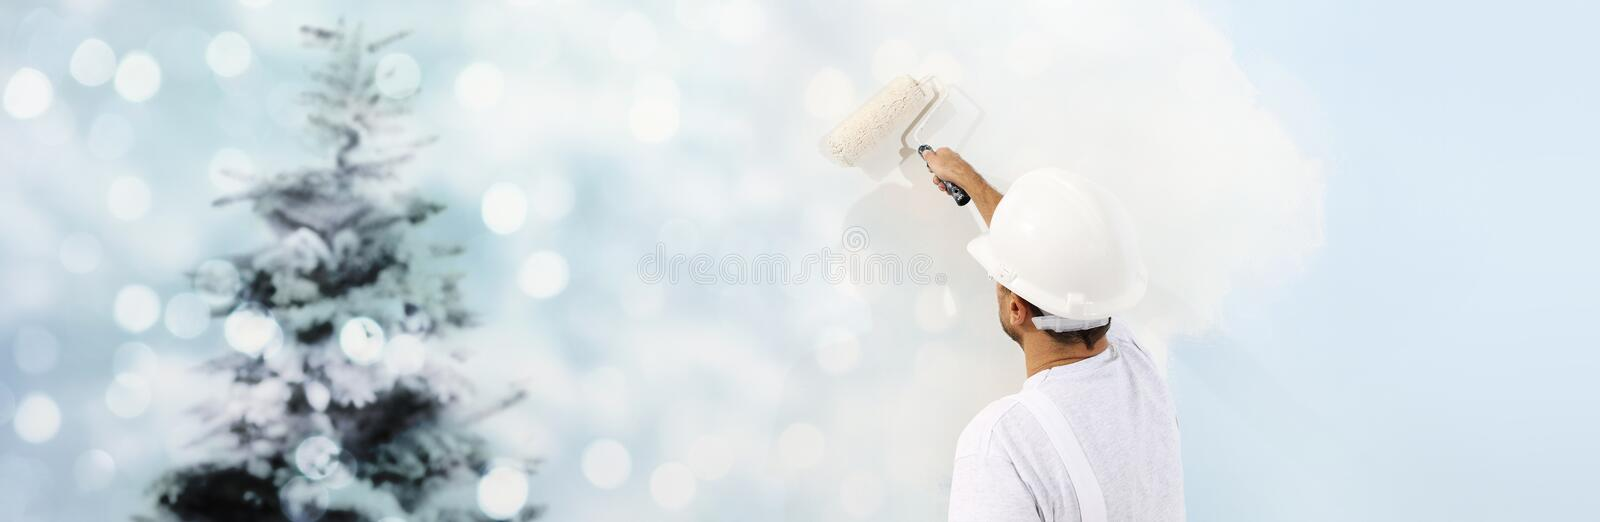 Wish a Merry Christmas concept, painter with roller painting a C stock photo